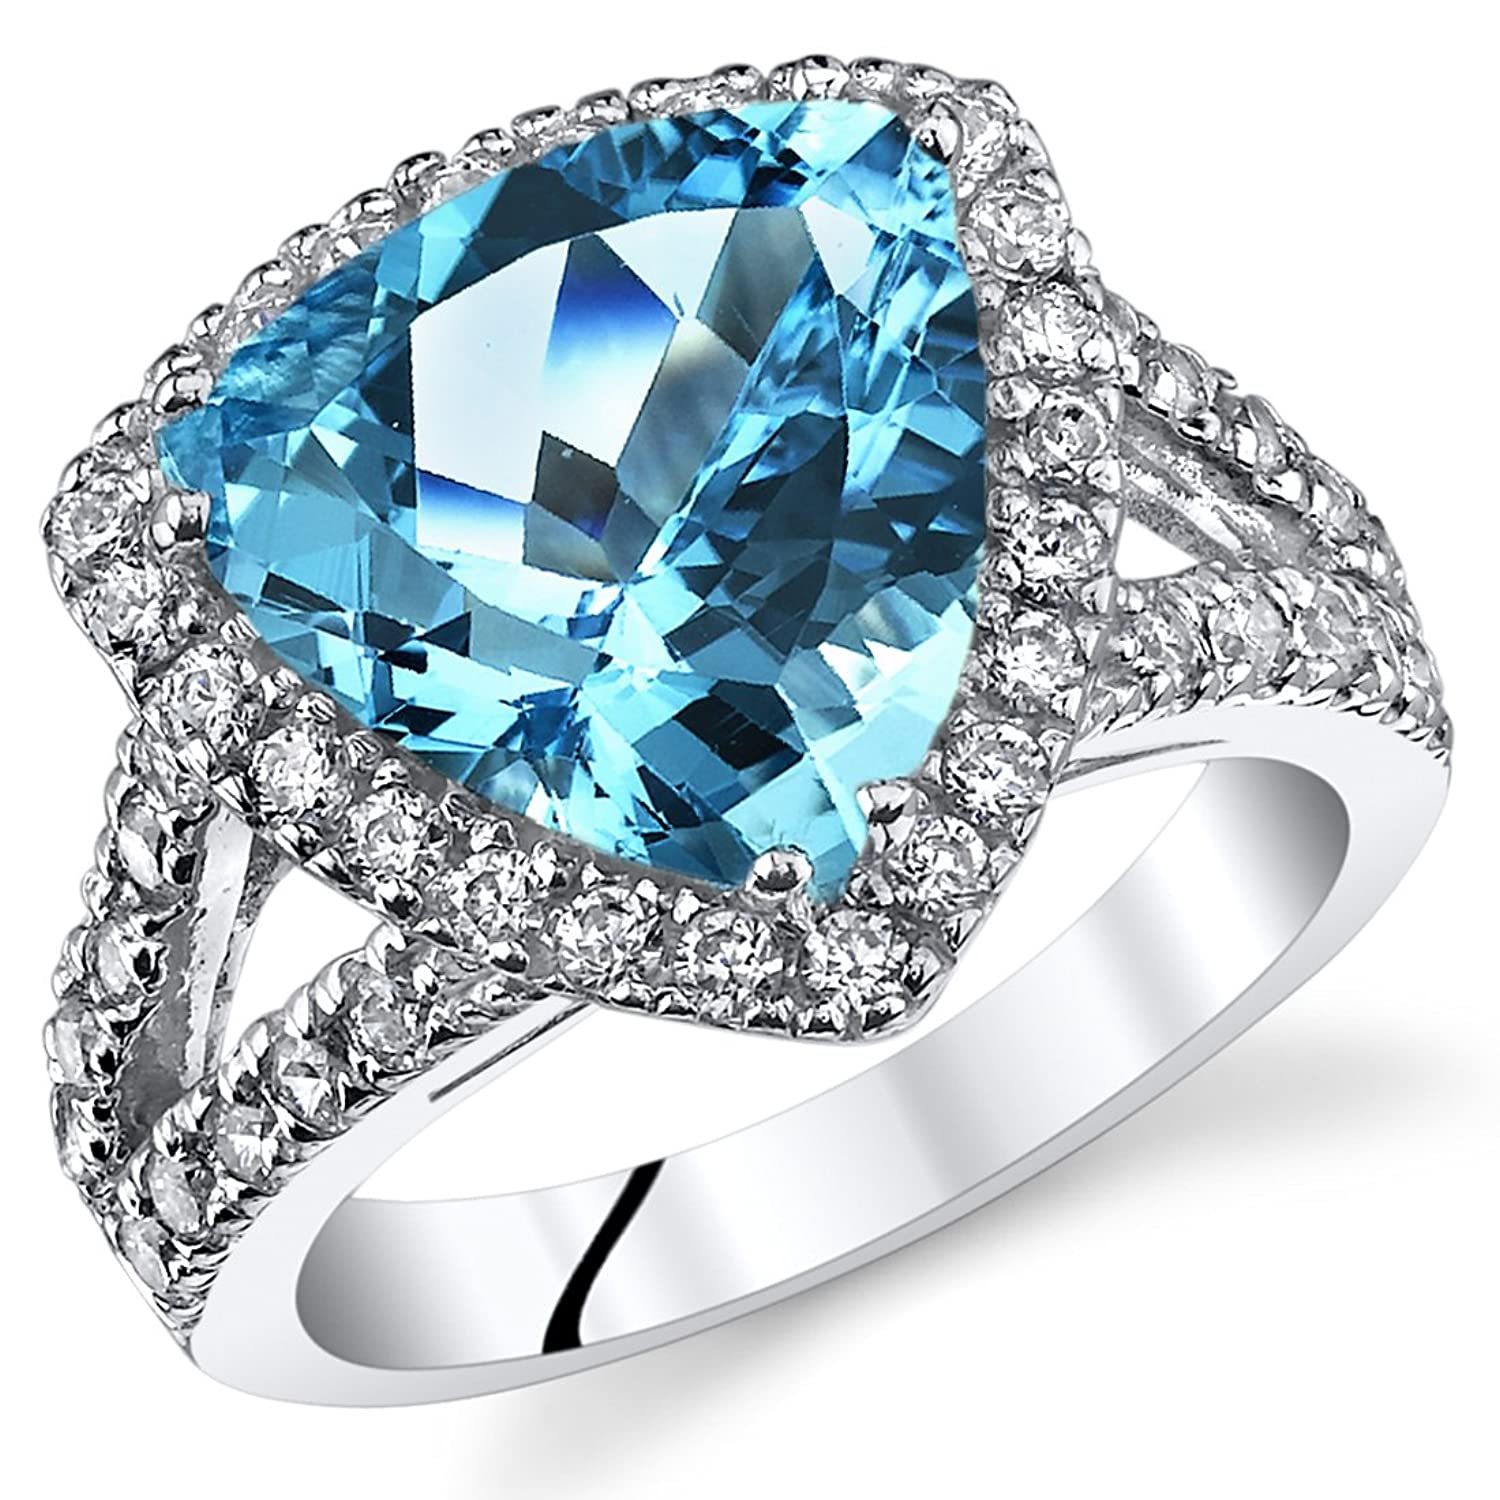 5.00 Carats Trillion Cut Swiss Blue Topaz Cocktail Ring Sterling Silver Sizes 5 to 9